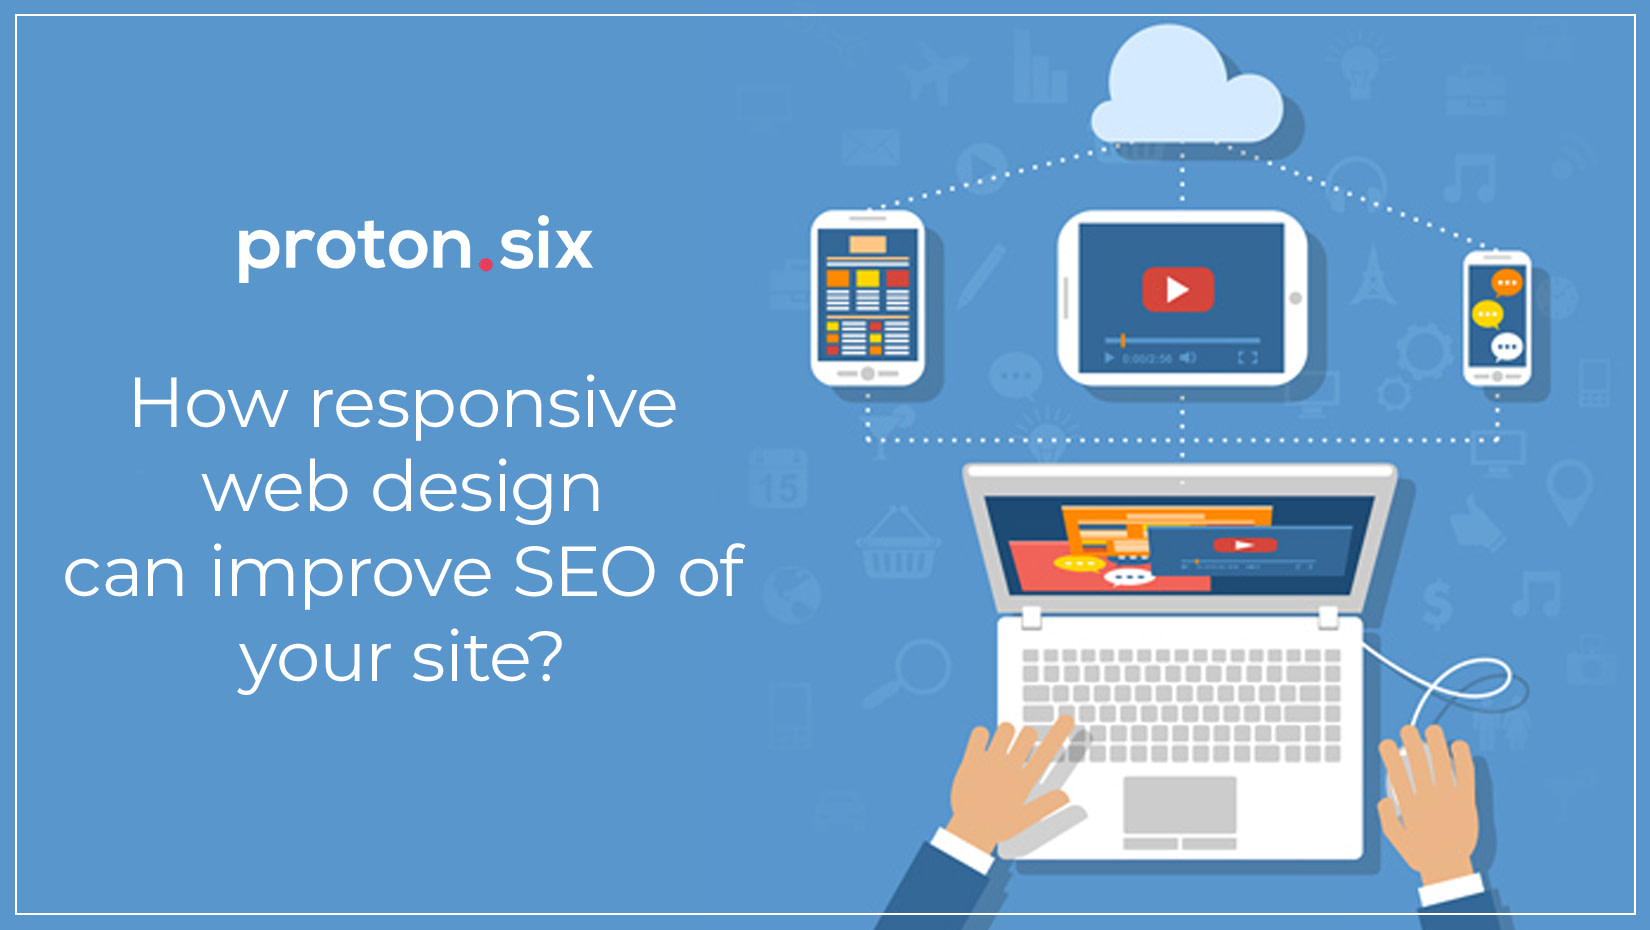 responsive web design can improve seo